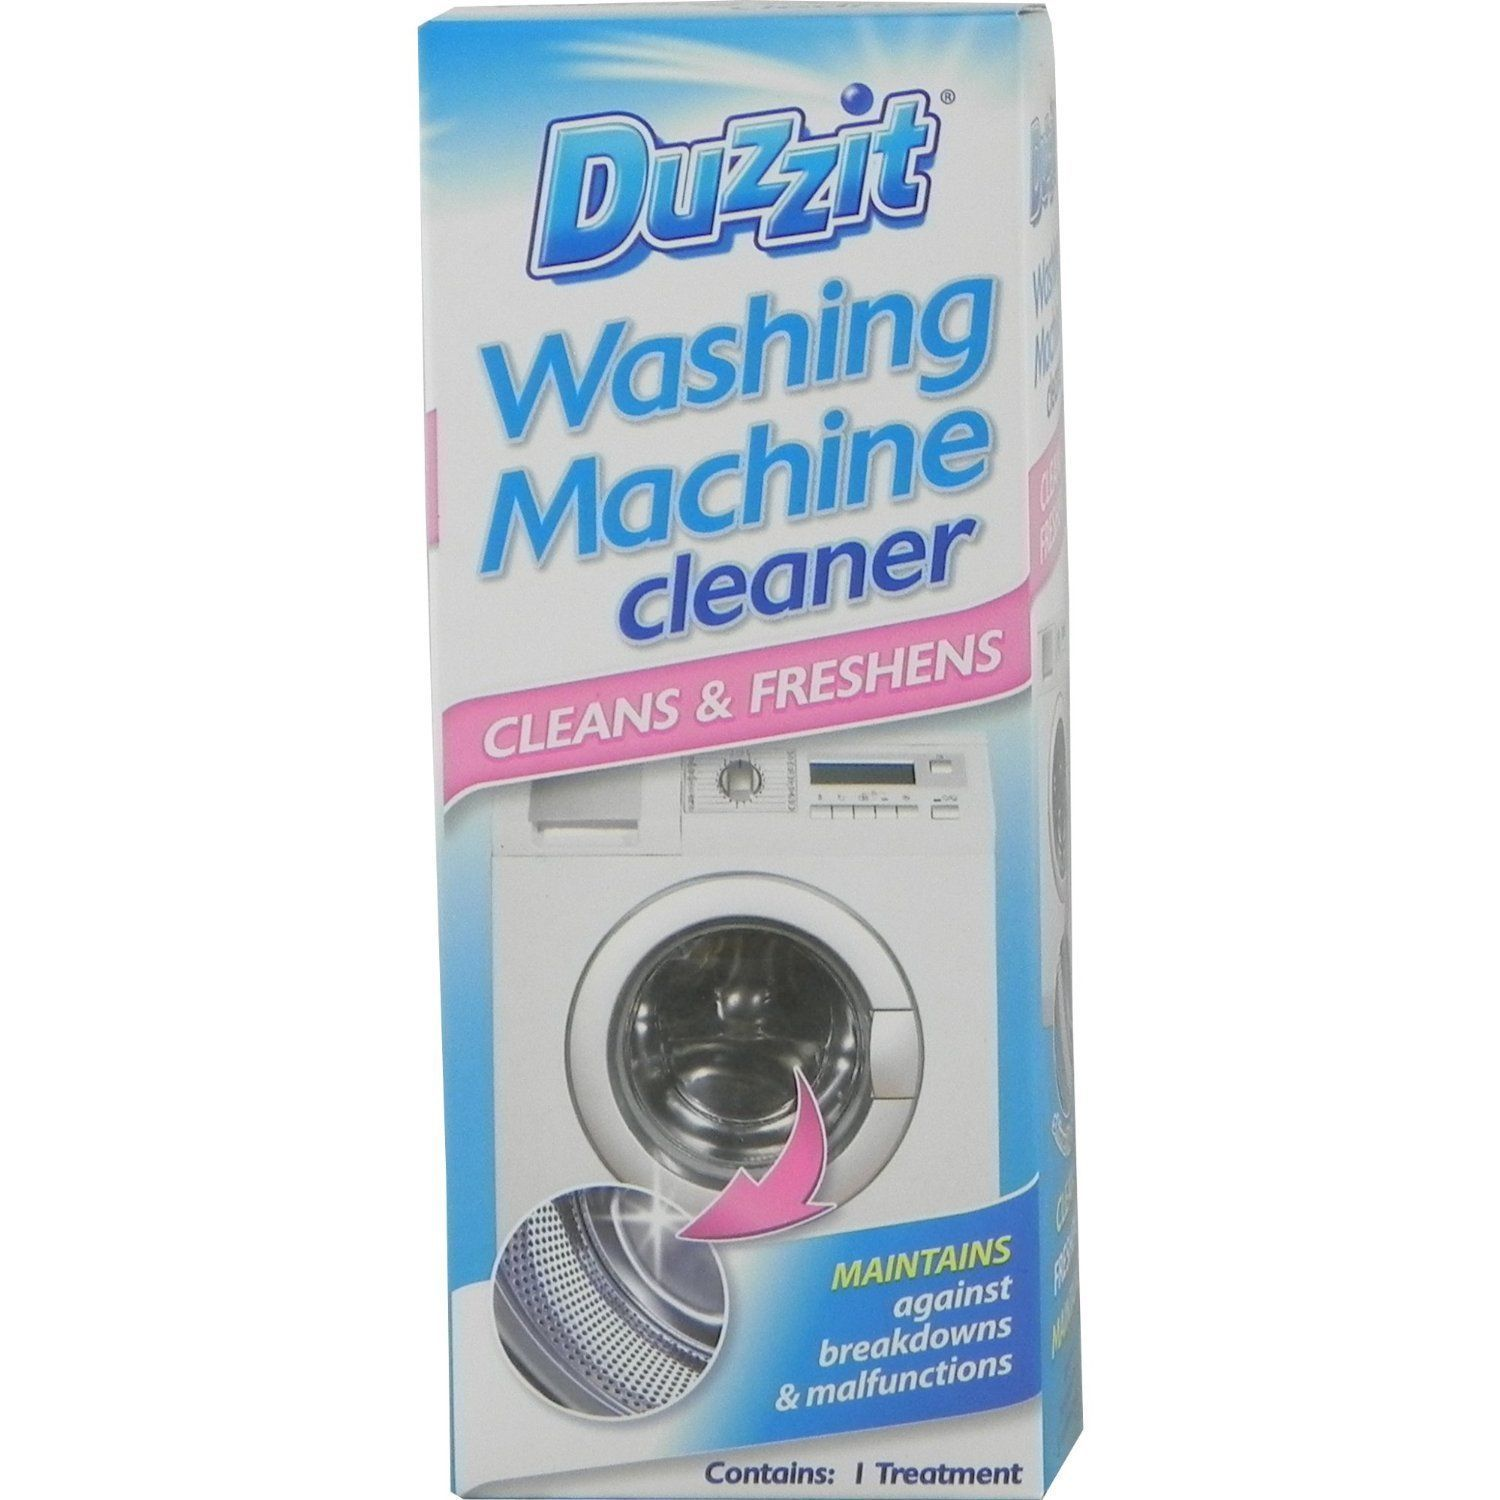 Duzzit Washing Machine Cleaner